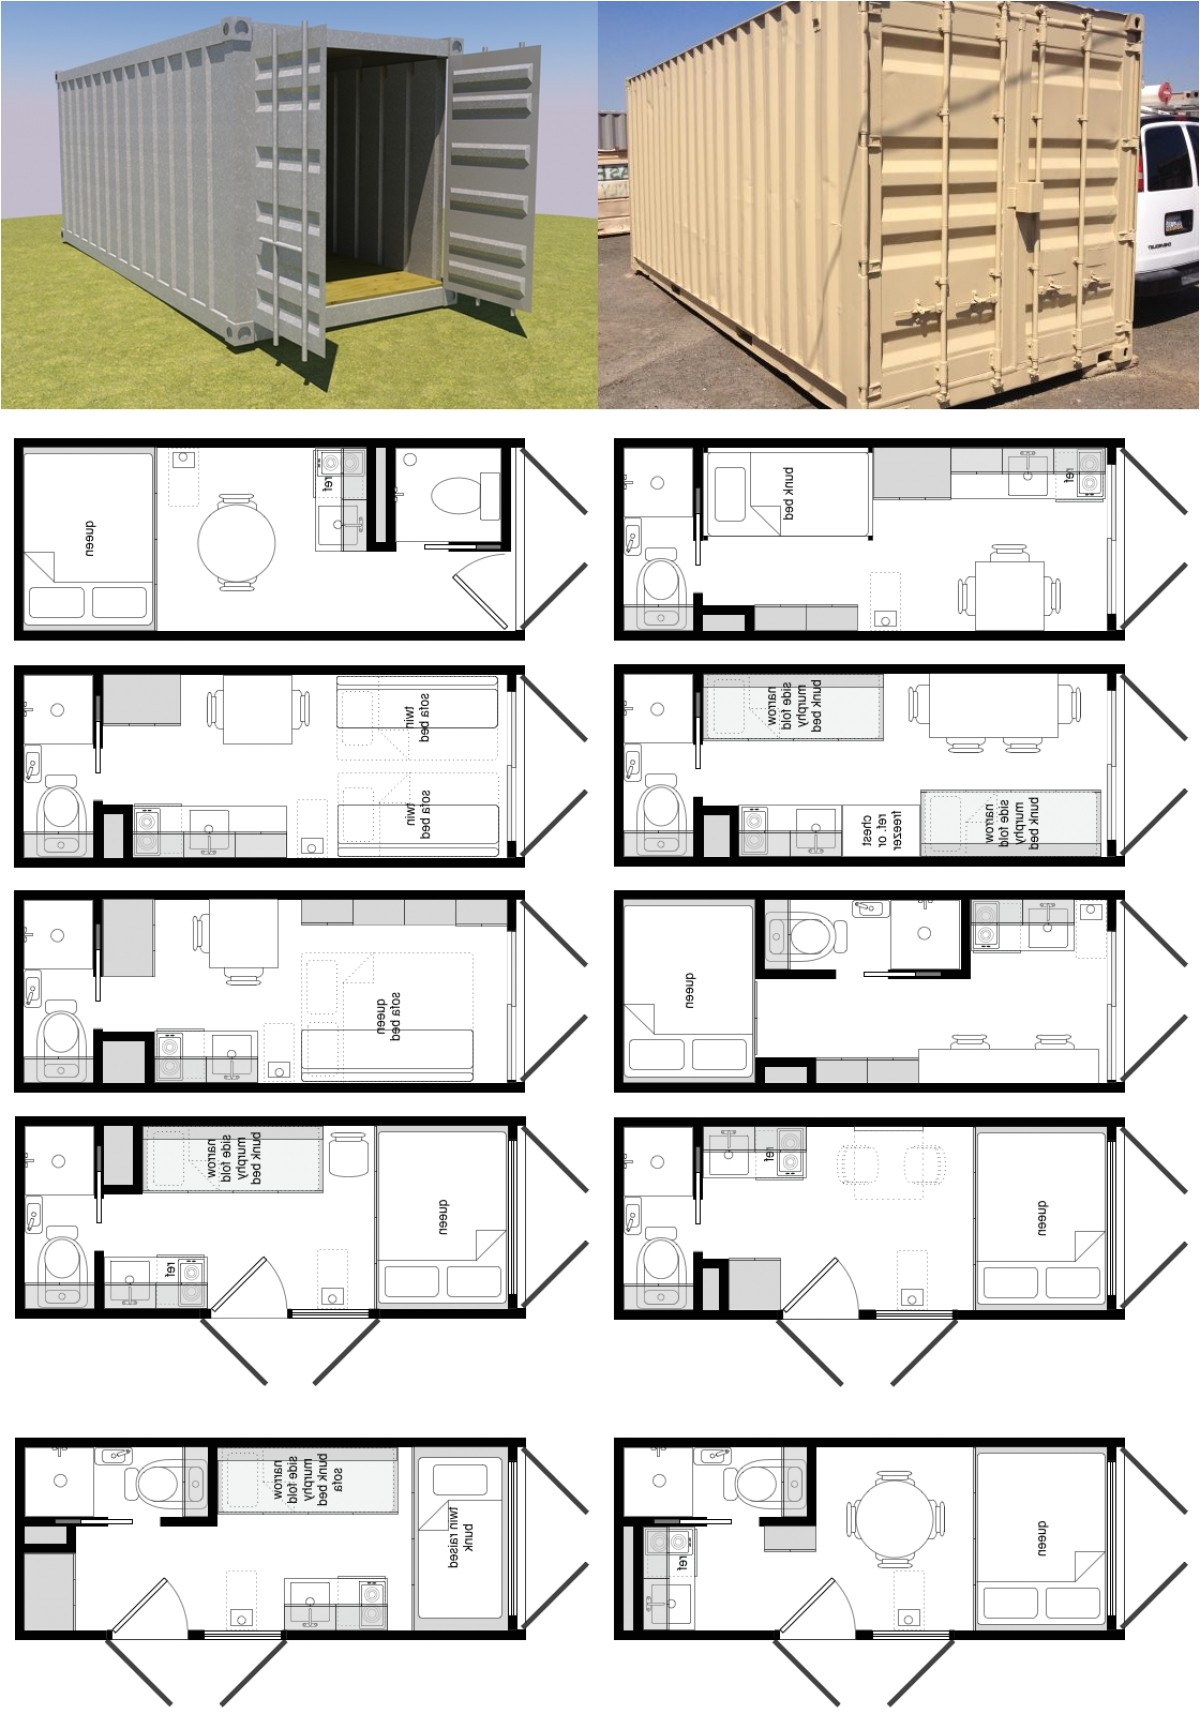 free shipping container